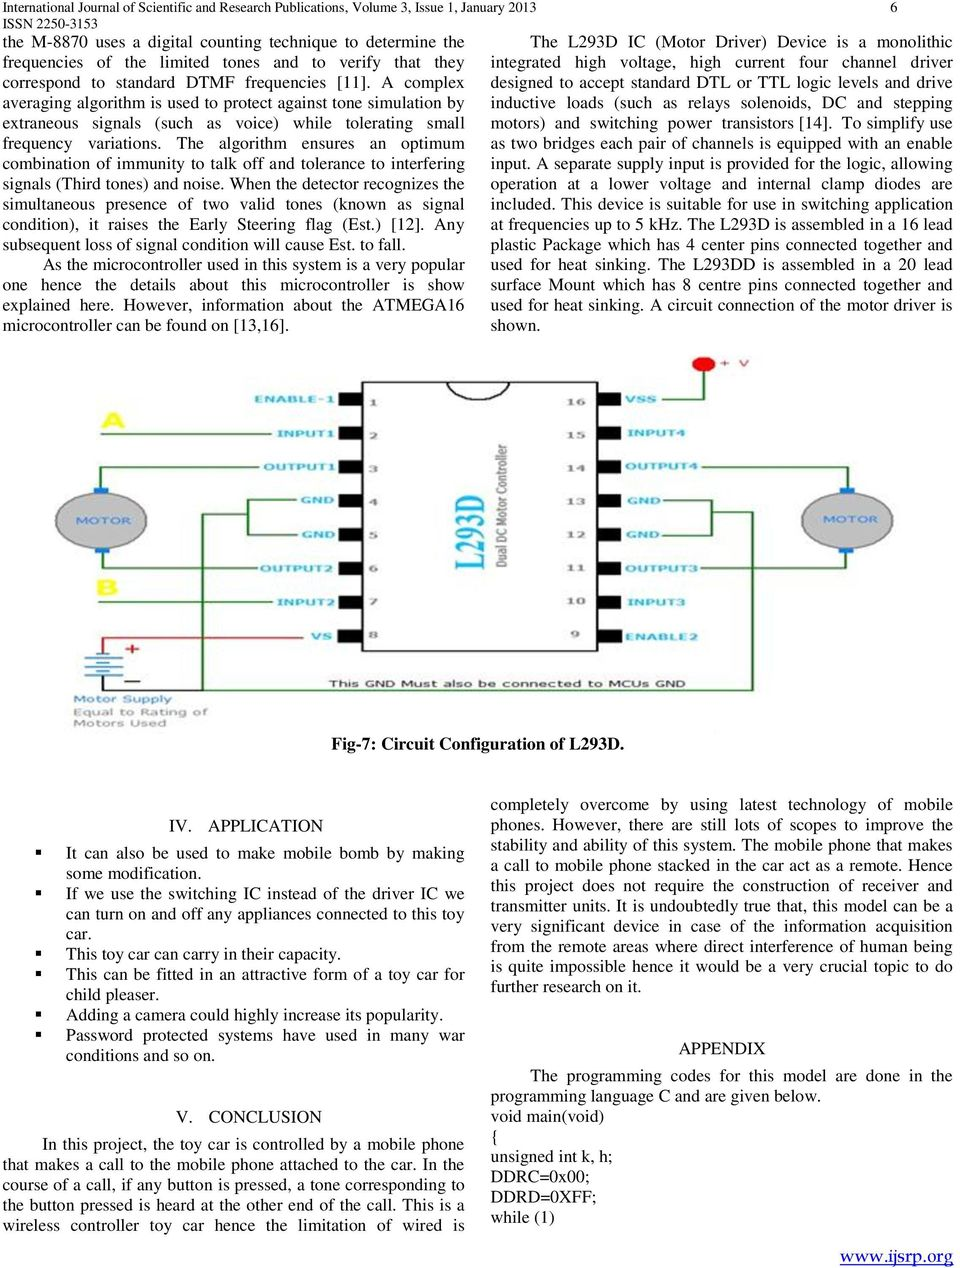 Designing Implementation Of Mobile Operated Toy Car By Dtmf Pdf Ac Fan Speed Control Using Android Microtronics Technologies A Complex Averaging Algorithm Is Used To Protect Against Tone Simulation Extraneous Signals Such